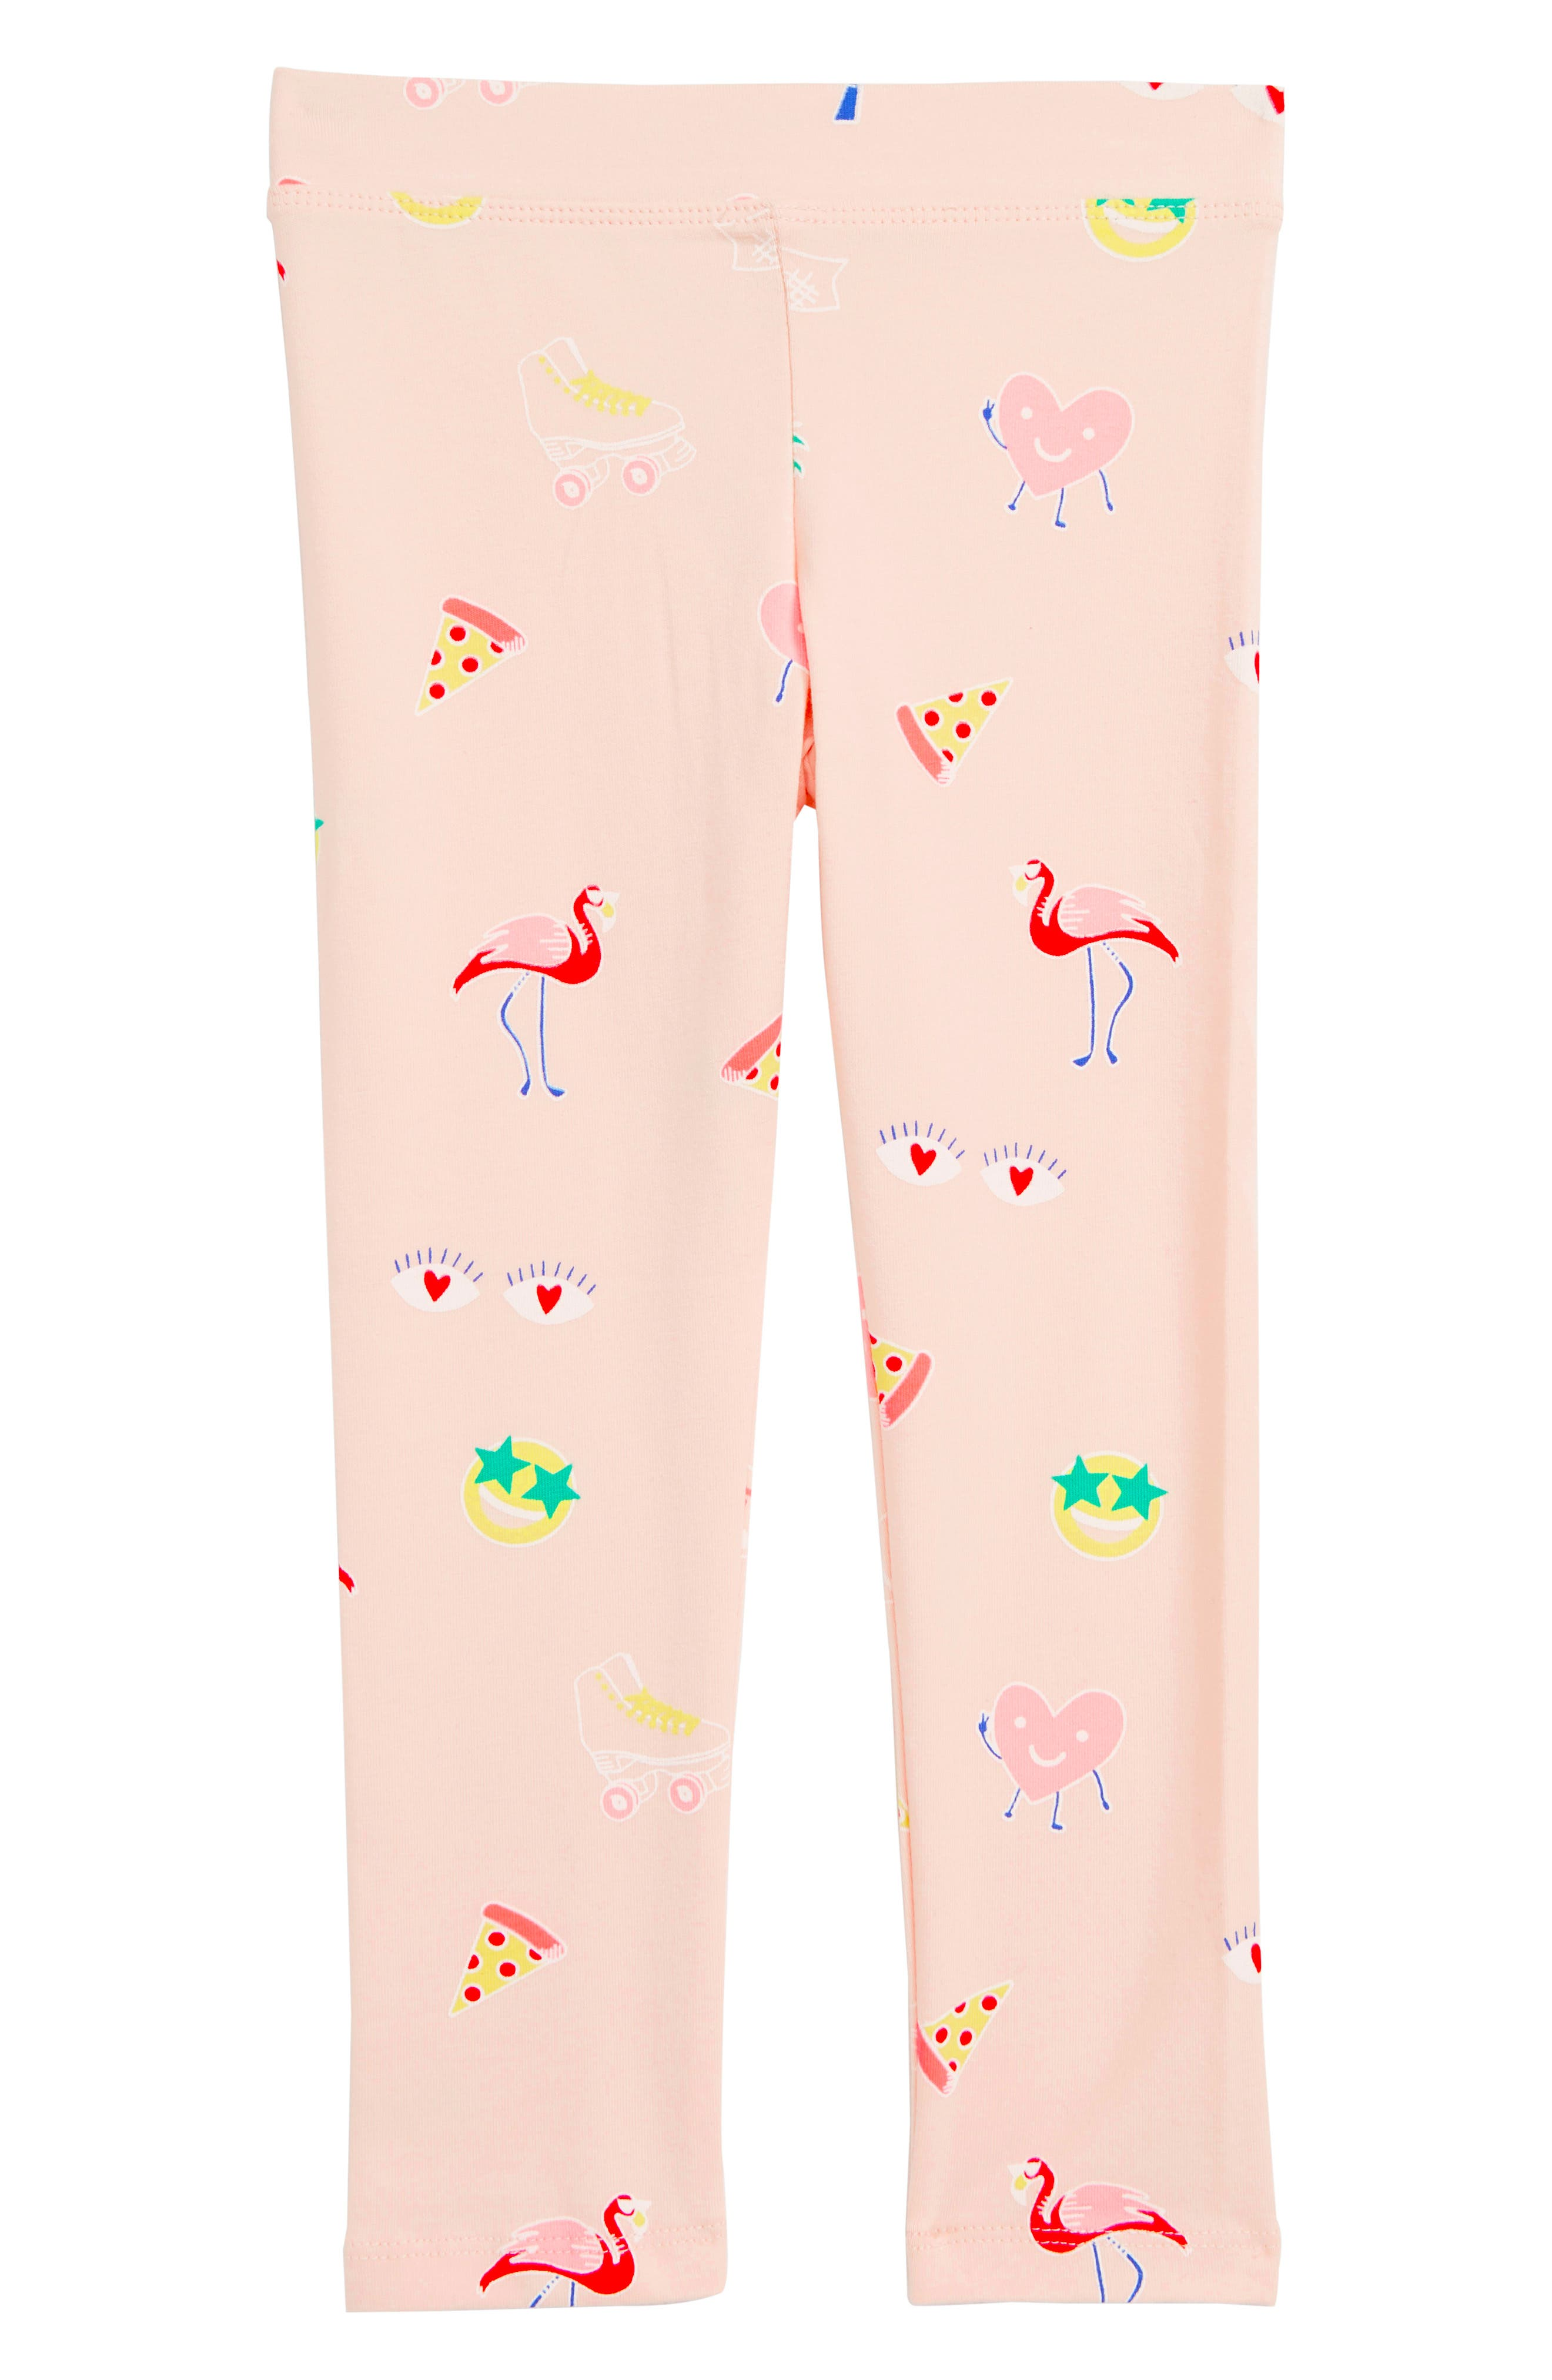 CREWCUTS BY J.CREW, Everyday Leggings, Main thumbnail 1, color, PINK MULTI GILRS DO FUN STUFF